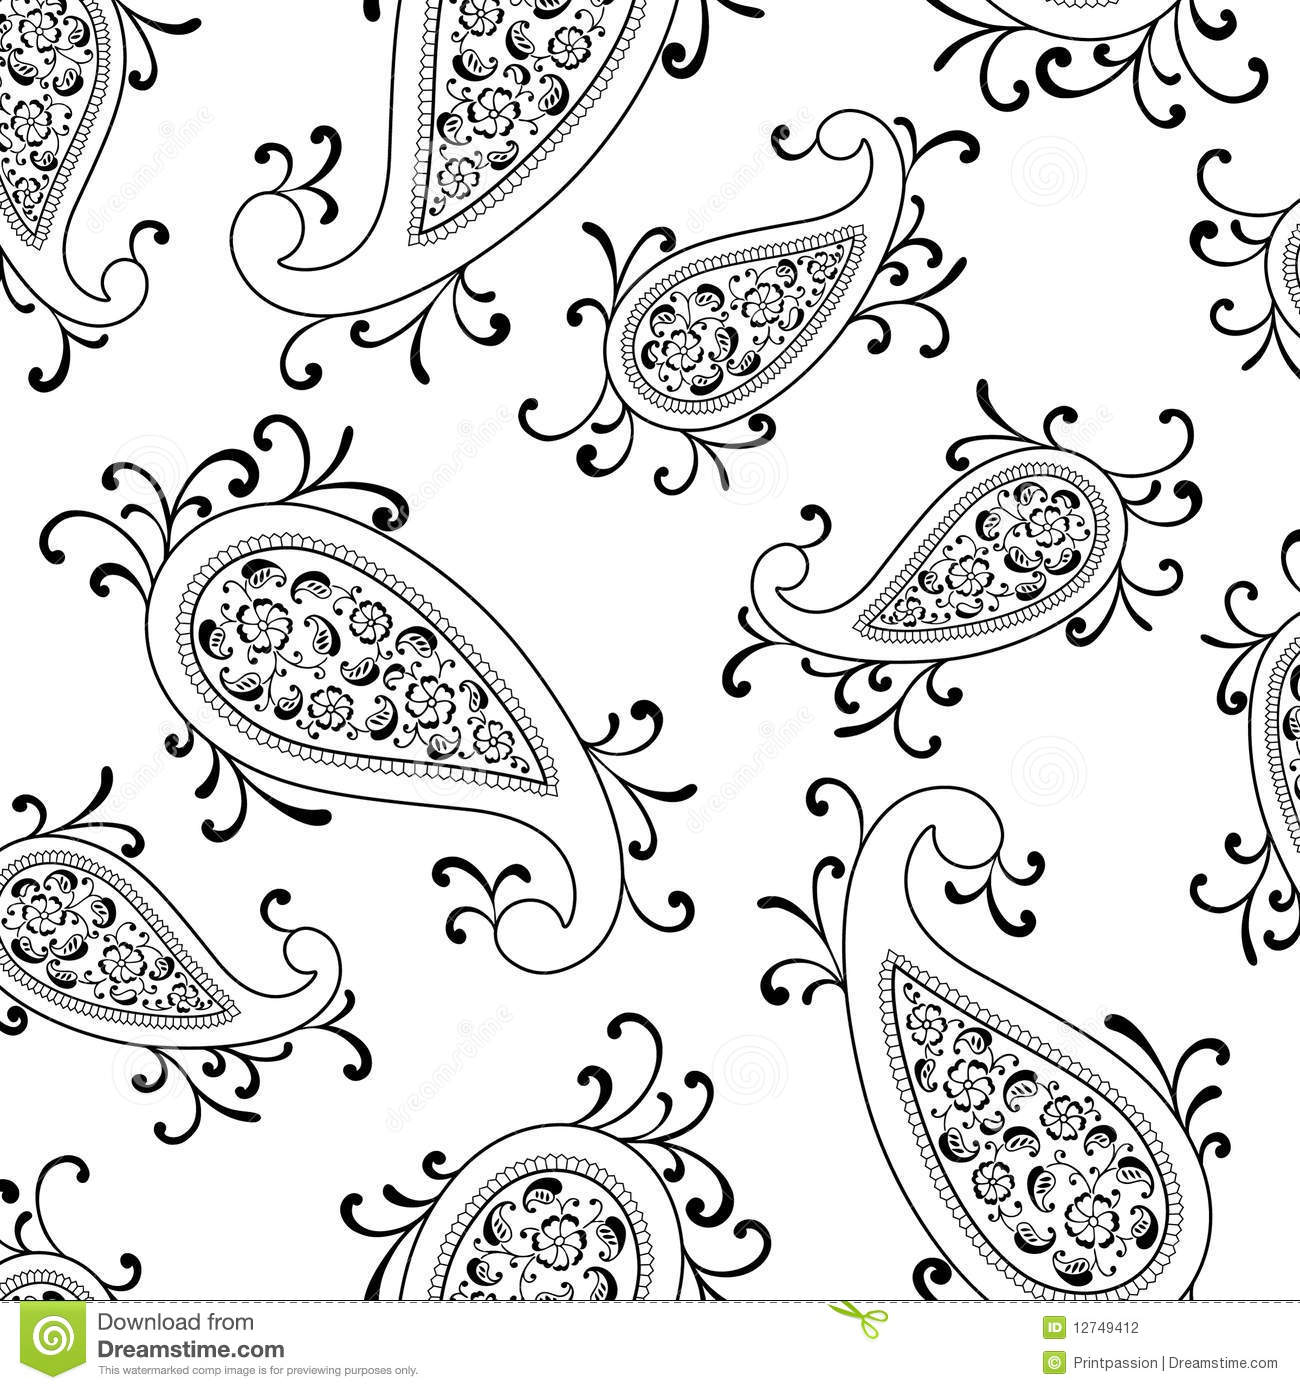 Floral Paisley Swirl Vector